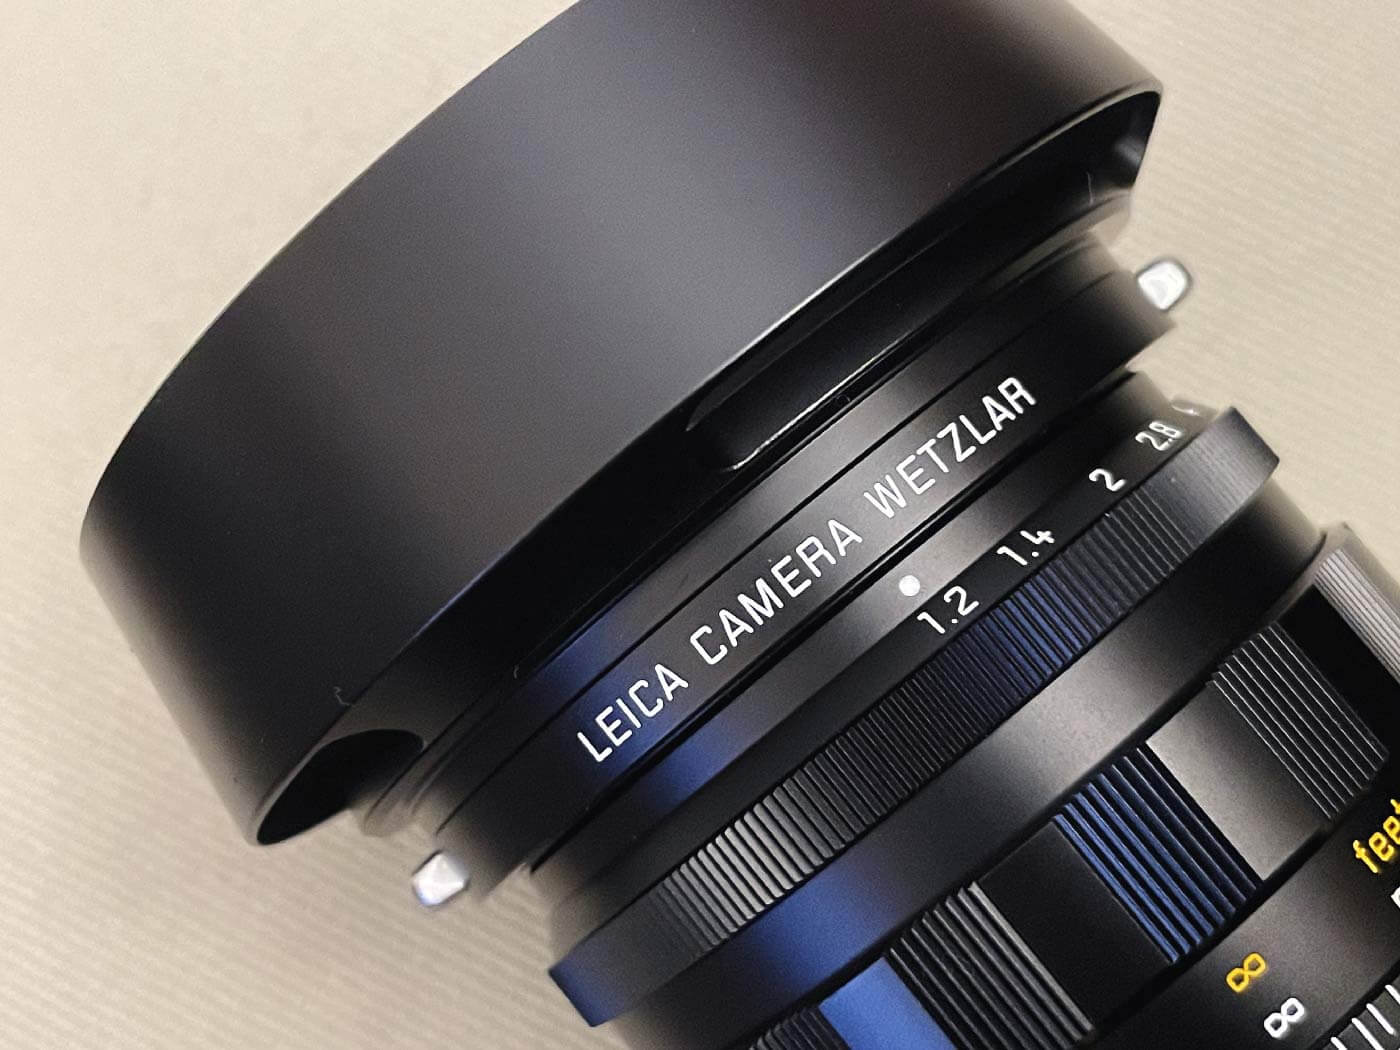 Leica-Noctilux-50mm-f1.2-1.2-asph-aspherical-reissue-v2-II-heritage-edition-limited-unbox-first-impression-certificate-inside-accessories-aperture-ring-focus